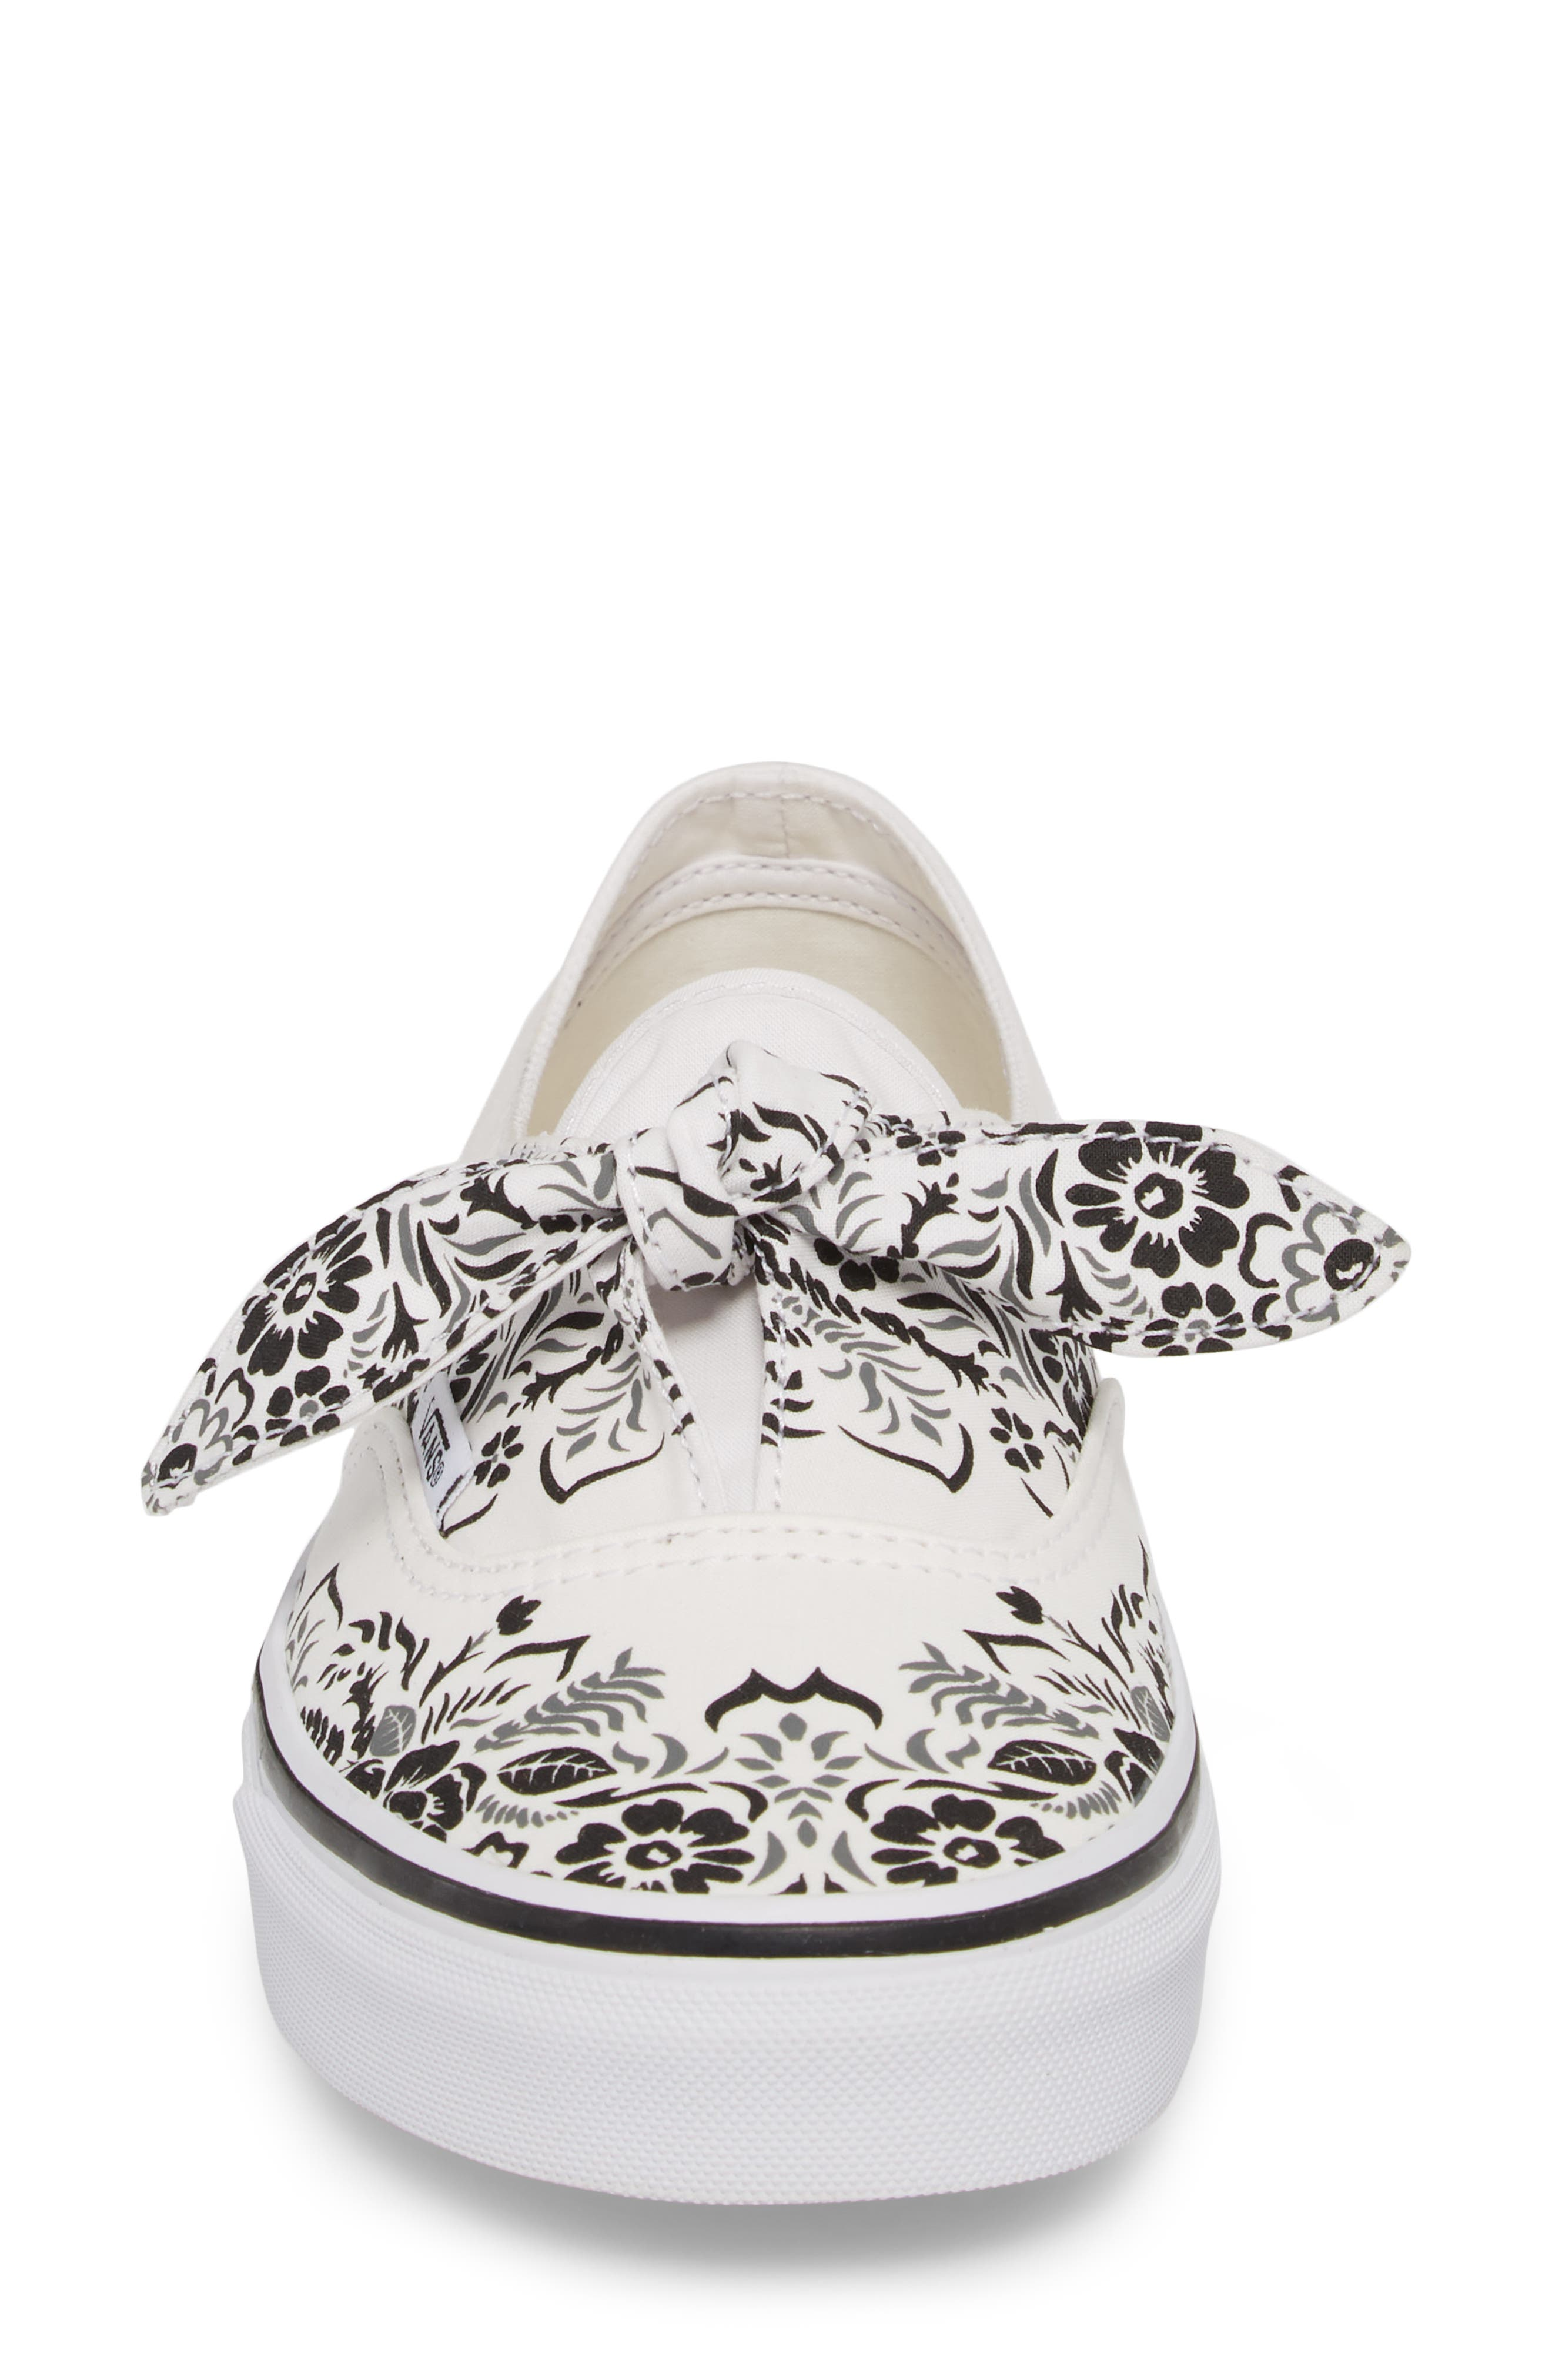 UA Authentic Knotted Floral Bandana Slip-On Sneaker,                             Alternate thumbnail 4, color,                             100